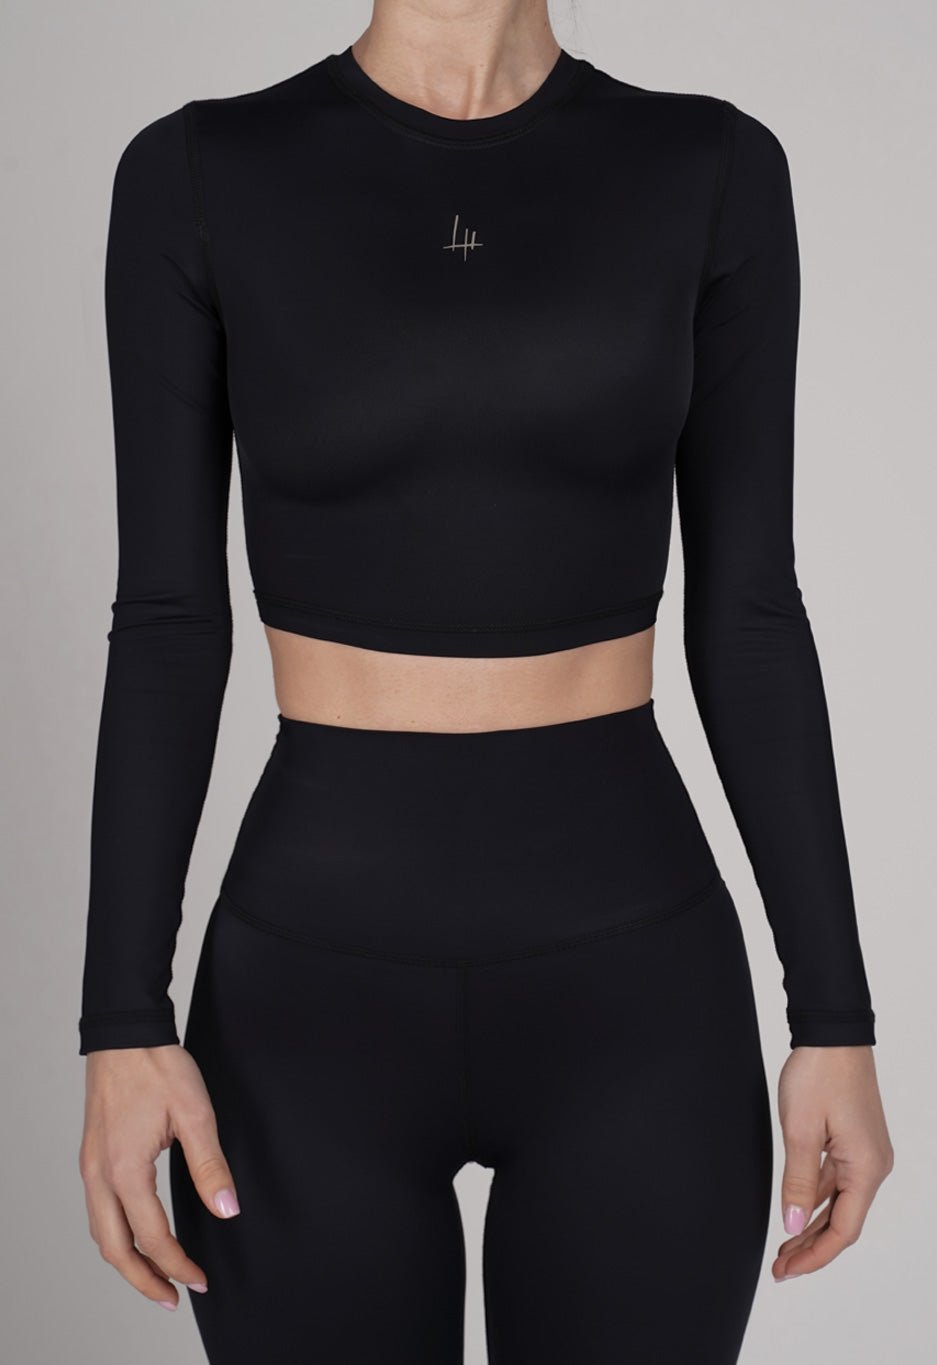 MORE TOXIC Crop Top - LH x COHL'S